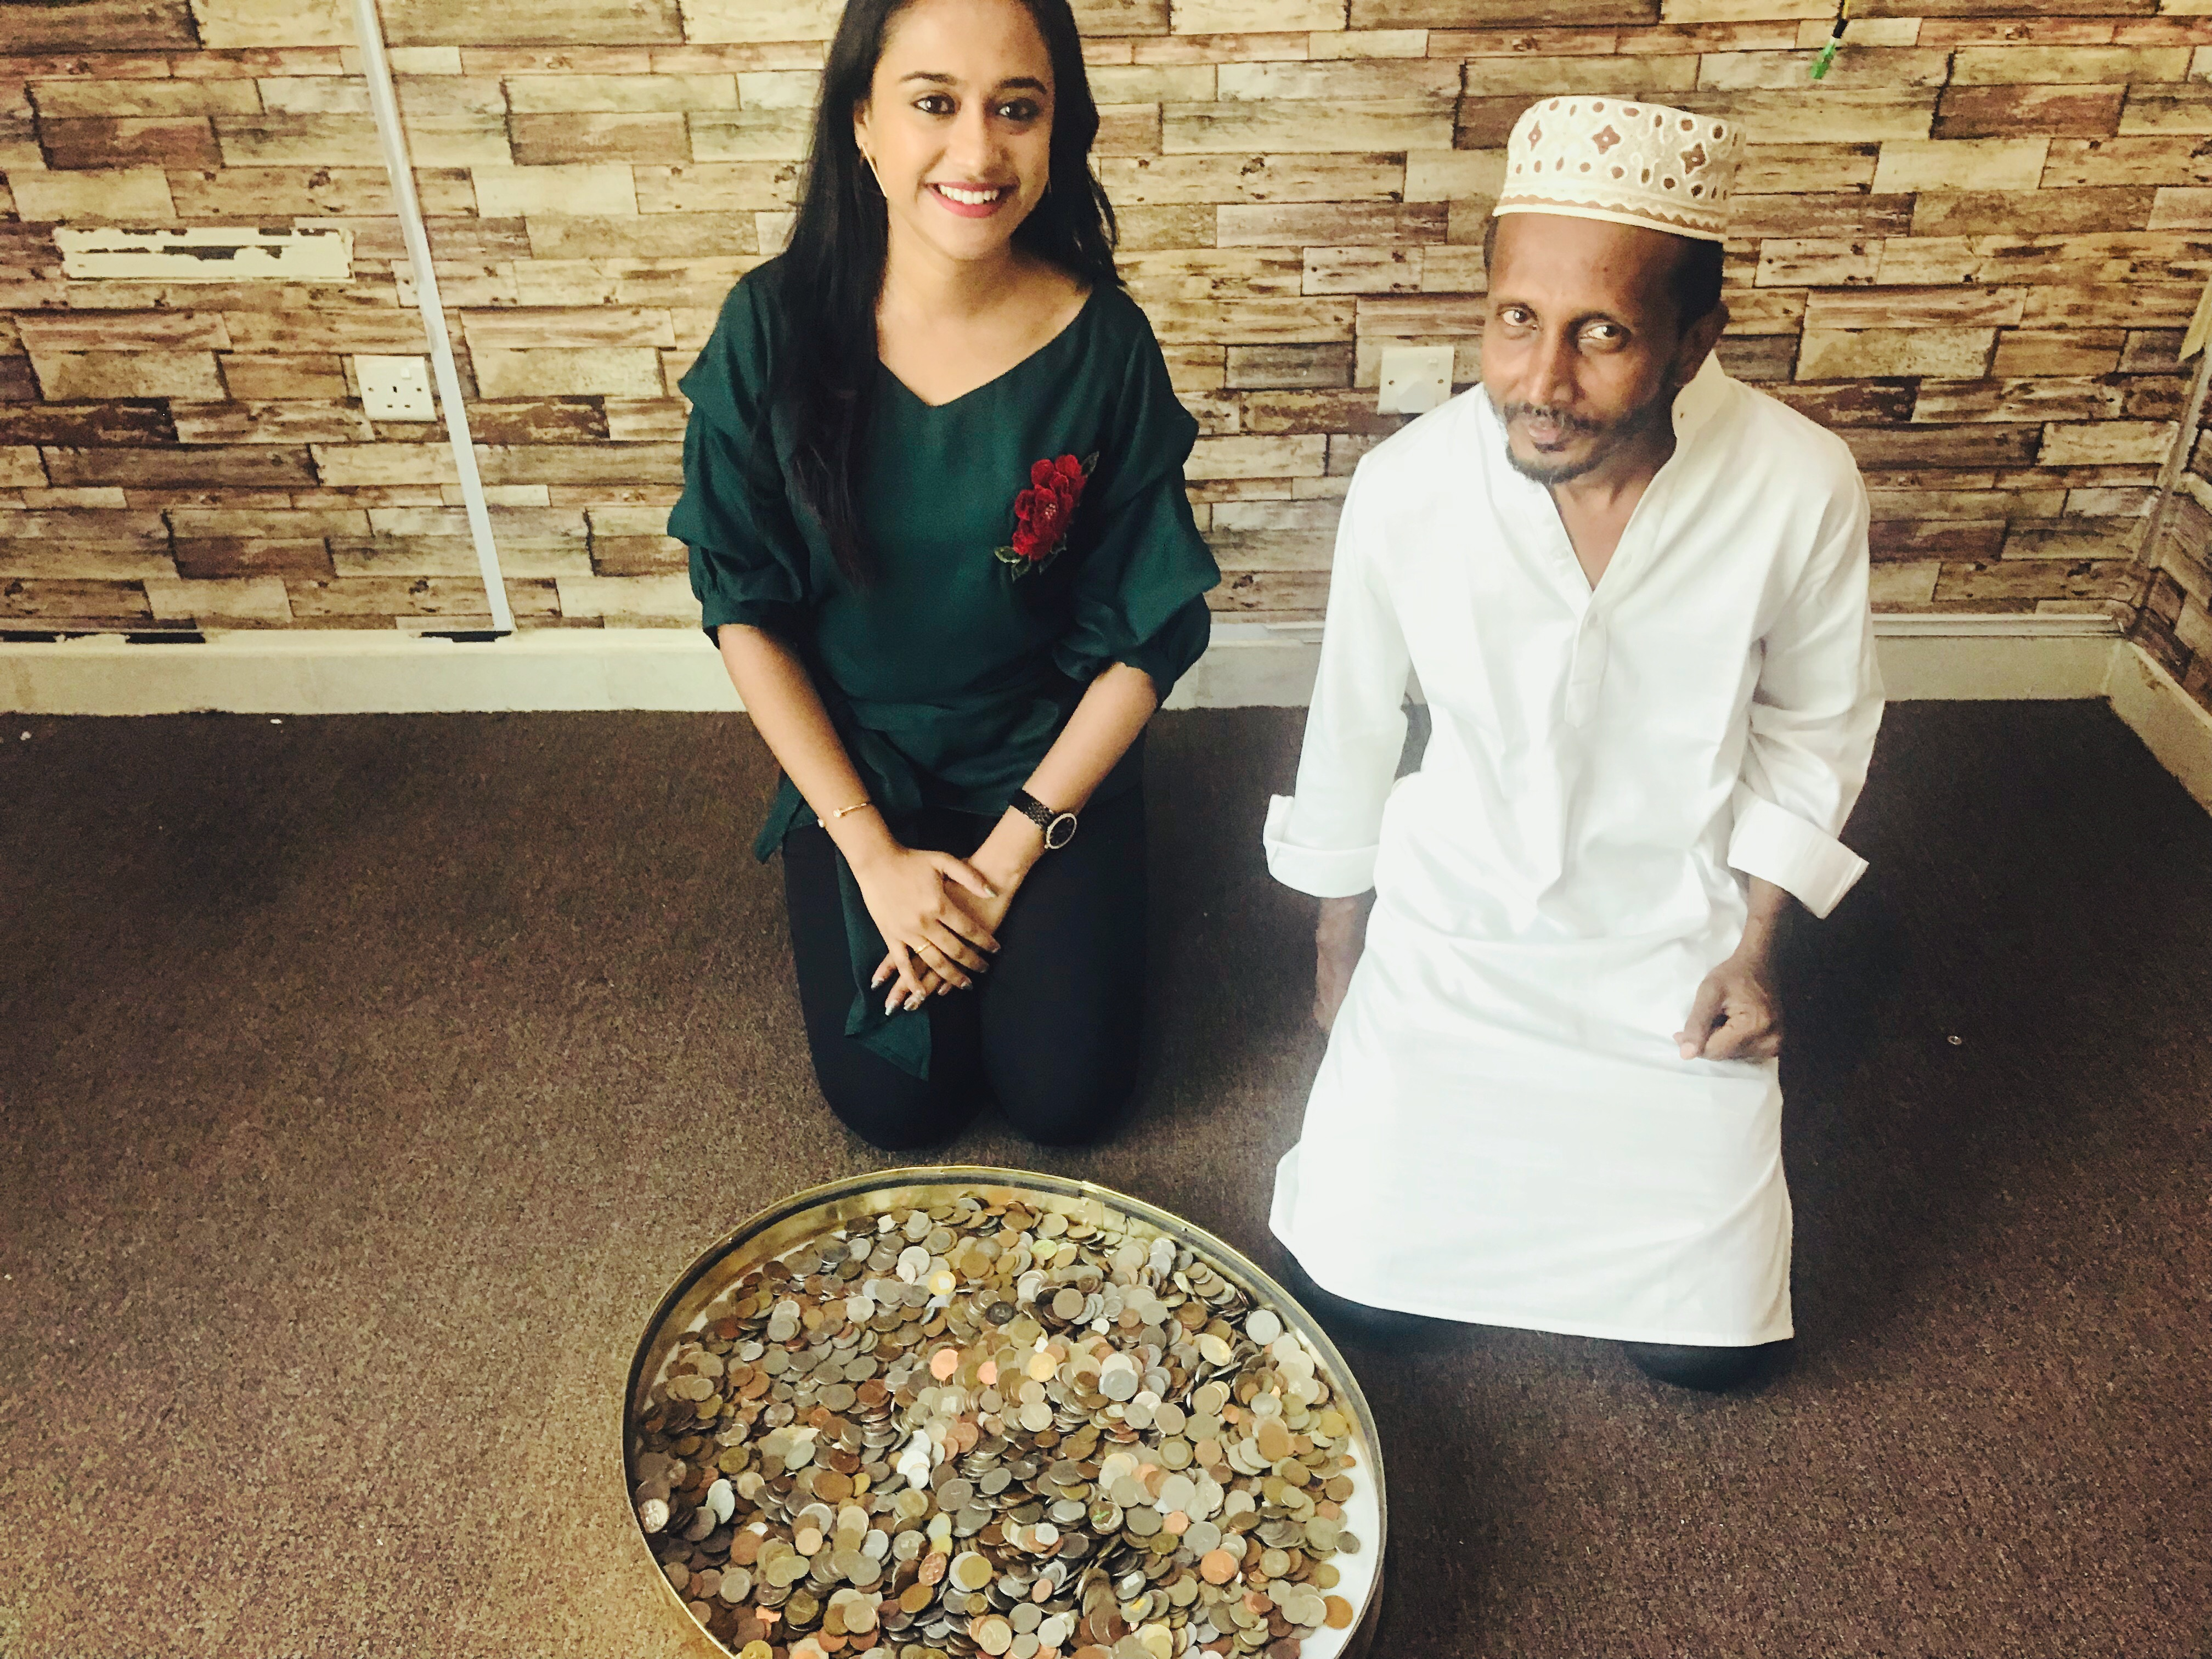 Indian expat ready to sell coin collection for Kerala flood relief!